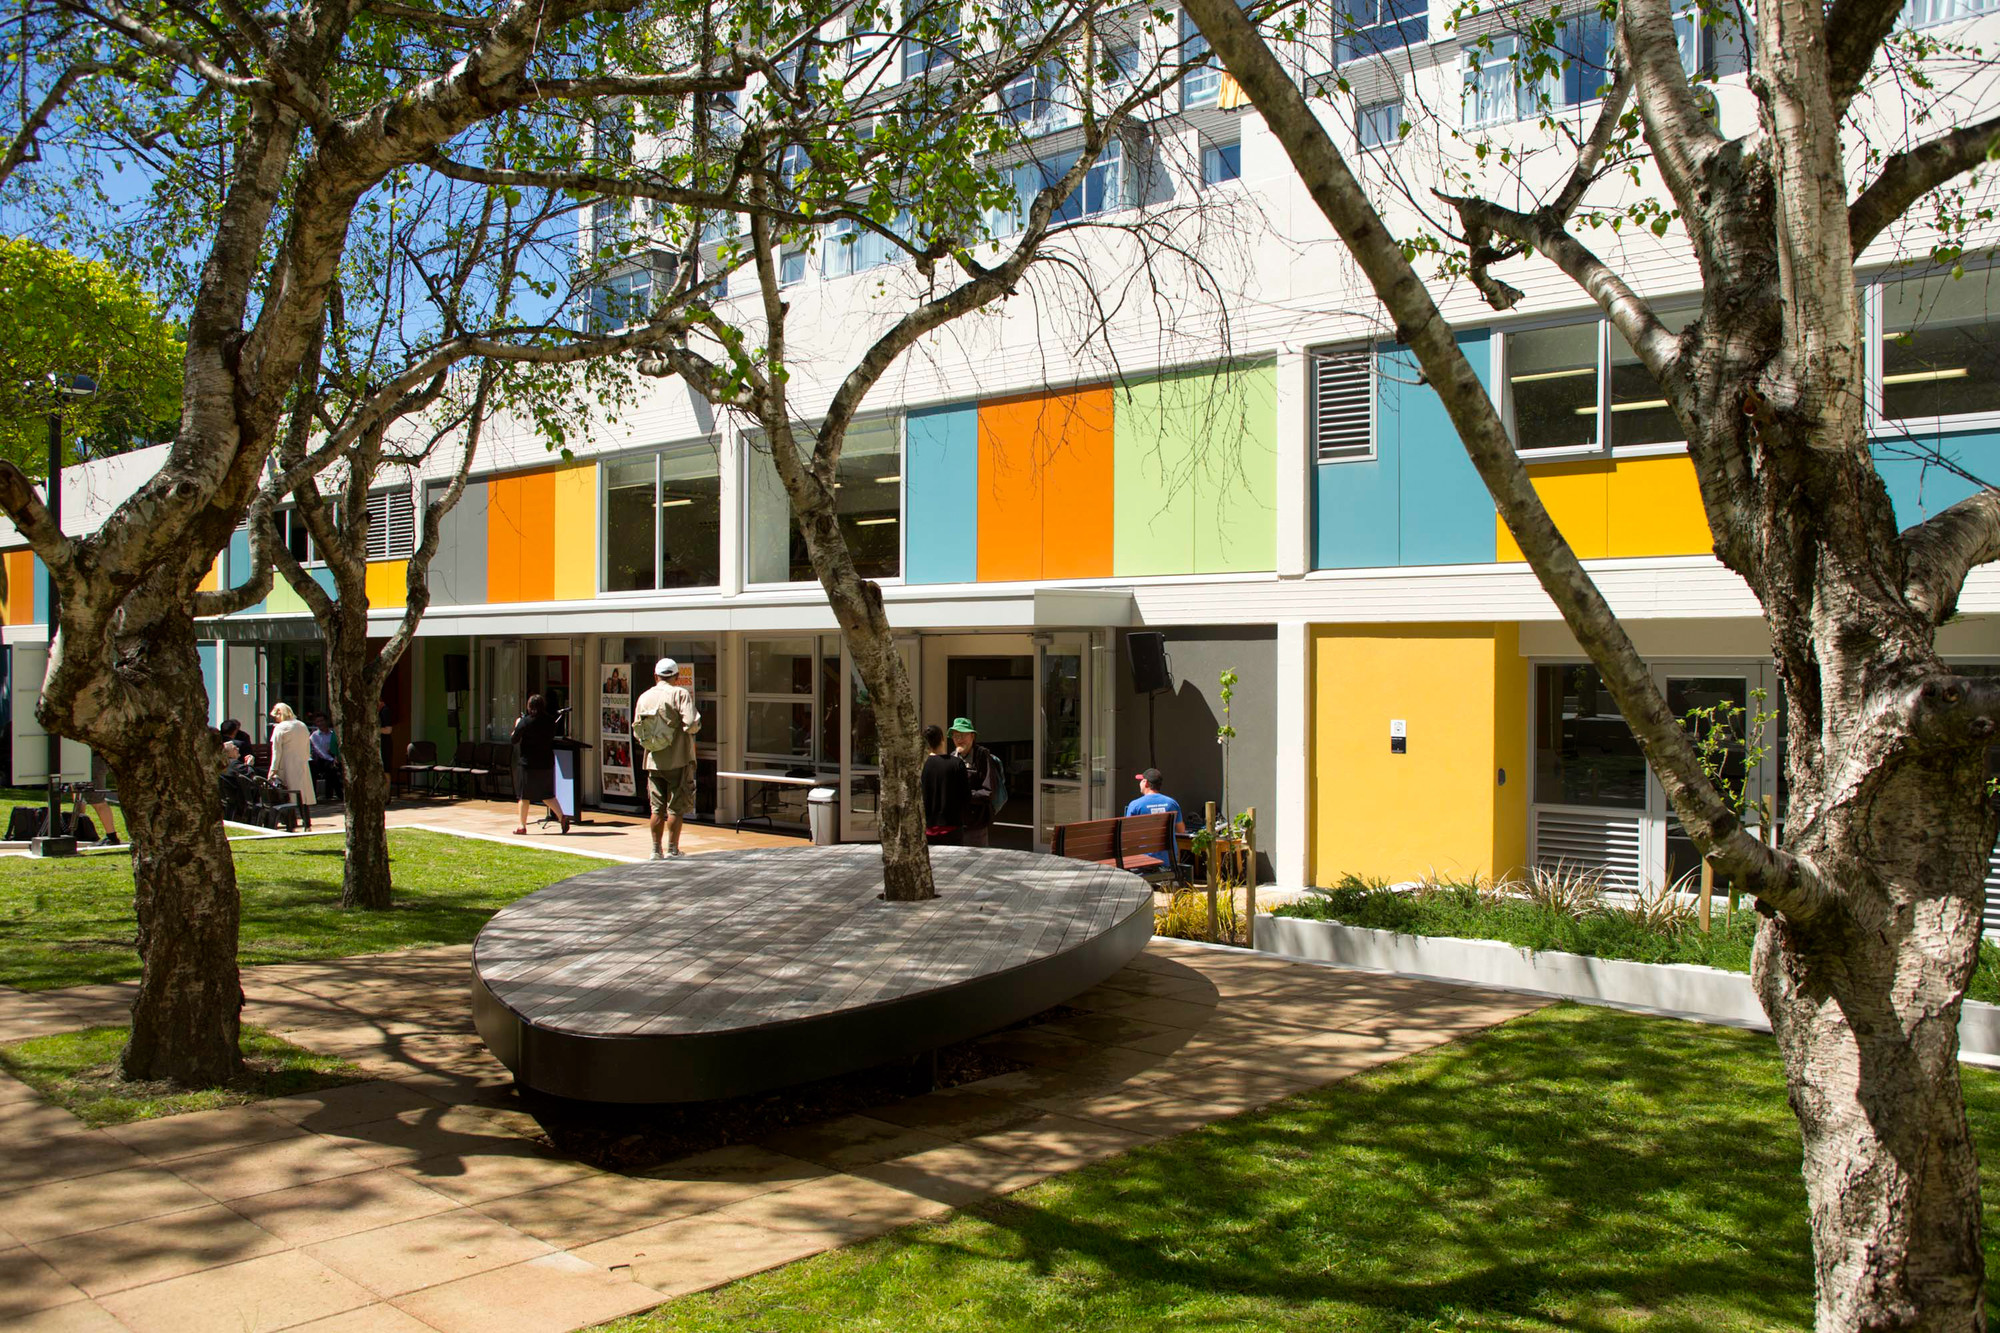 New zealand architecture awards 2014 winners announced for Apartments by central park